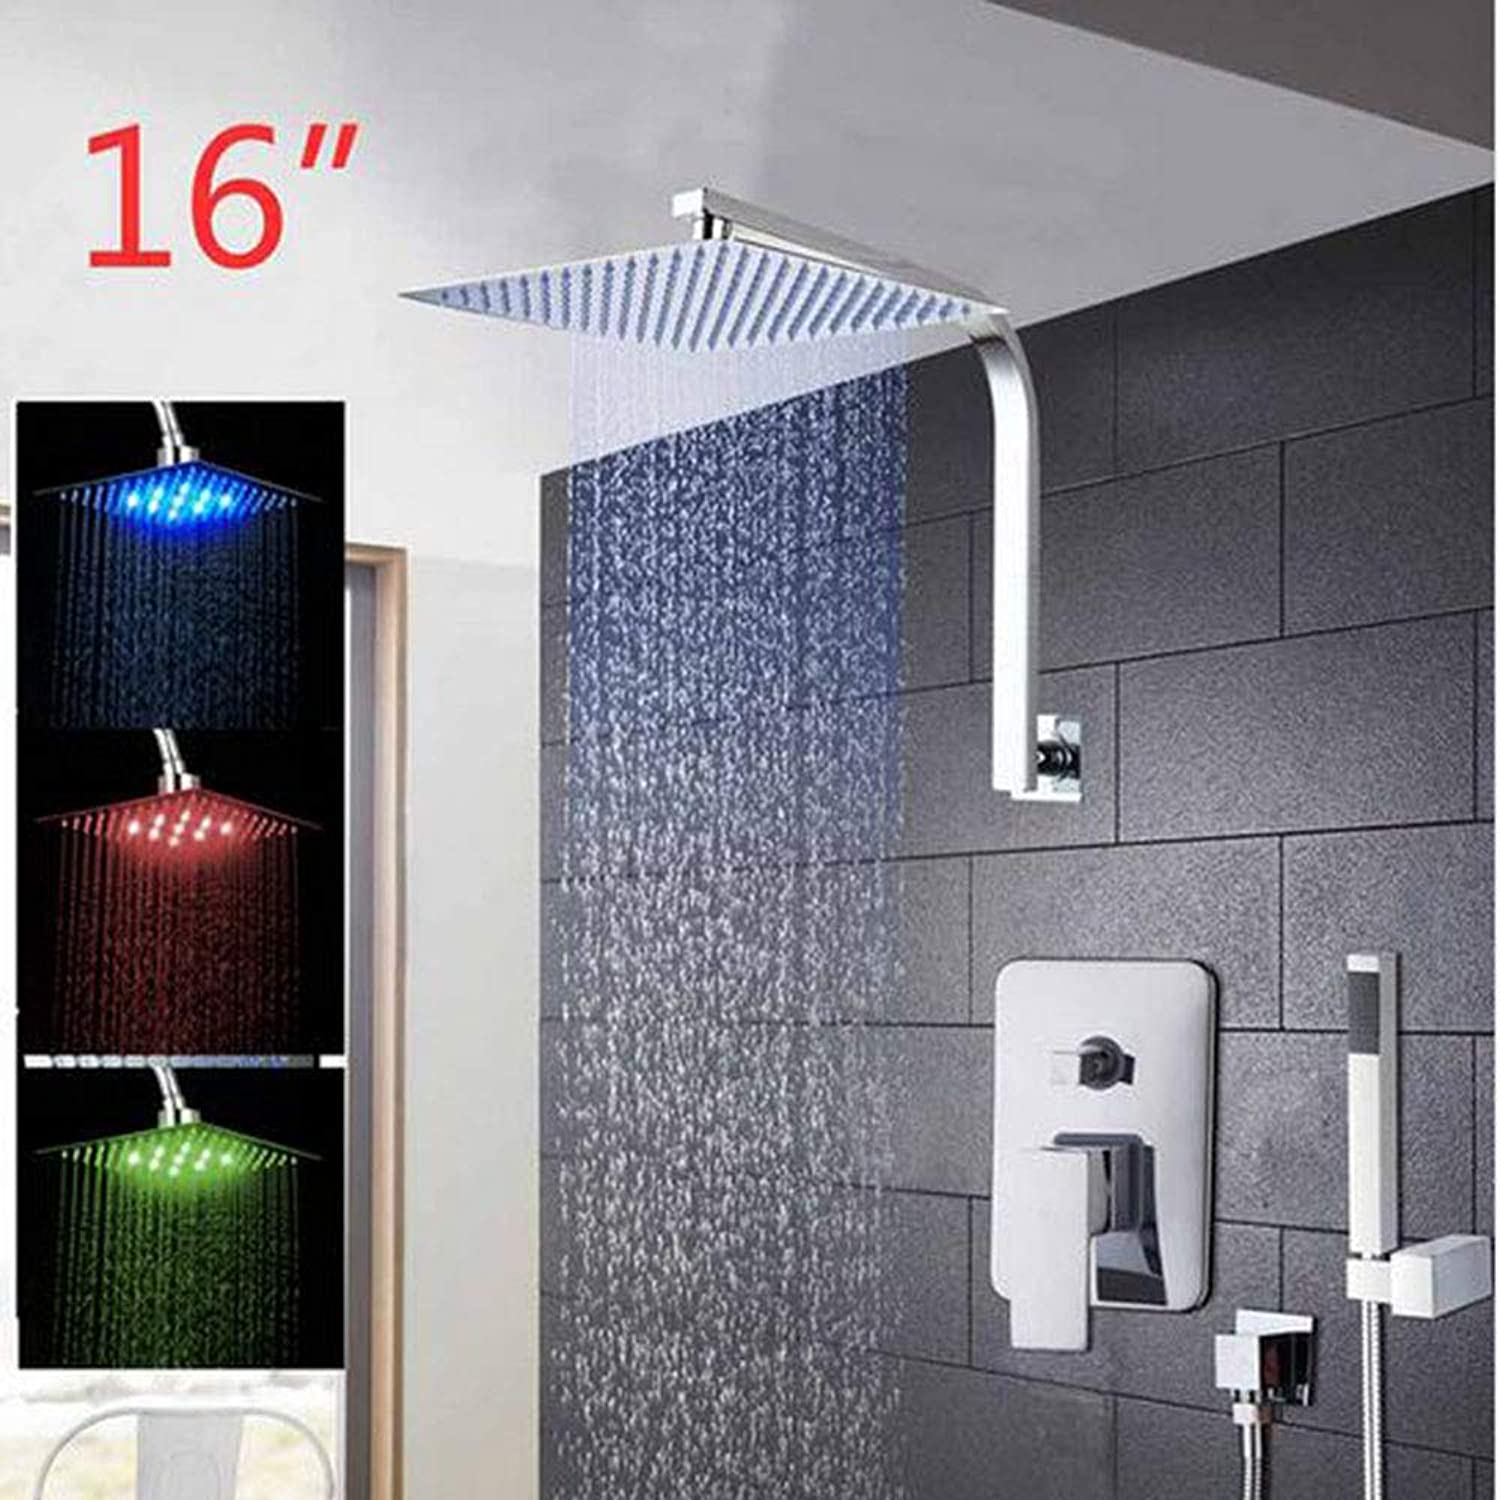 Elegant Wall Mounted Bathroom Shower Faucet Set Rainfall Head +Mixer Taps Hand Shower Waterfall Rain Bathroom Faucets,16inchLED